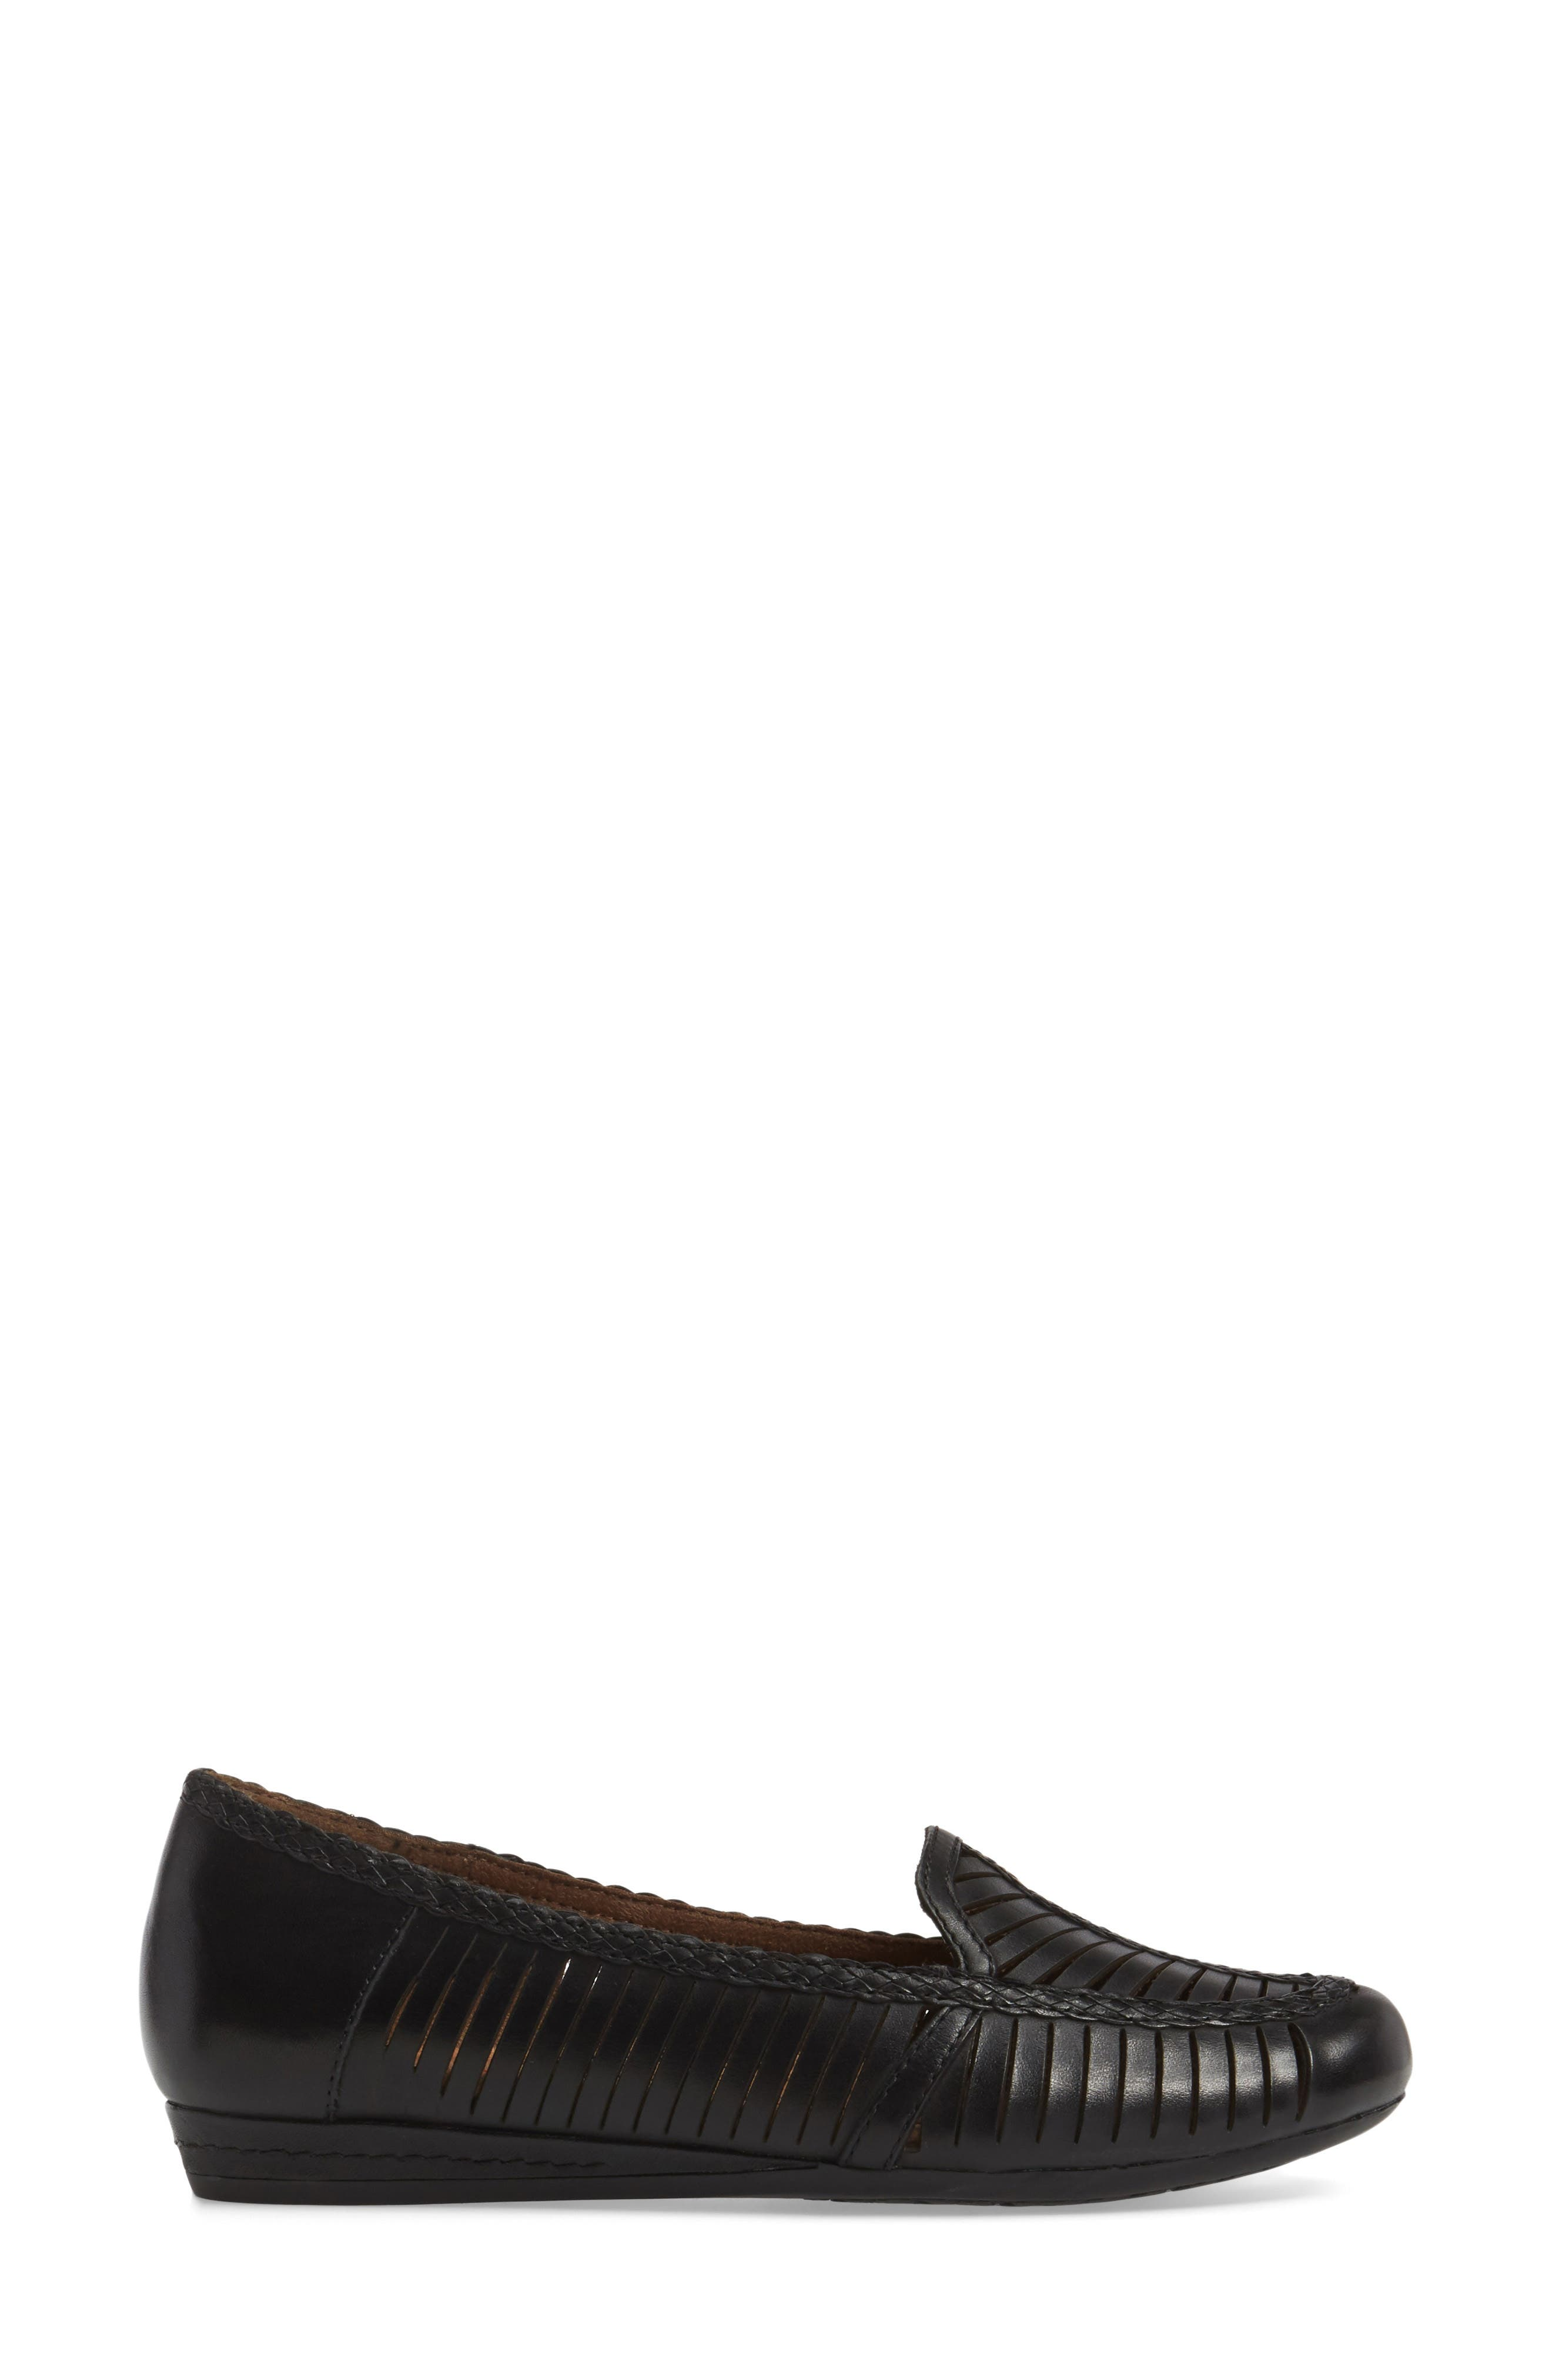 Galway Loafer,                             Alternate thumbnail 3, color,                             001